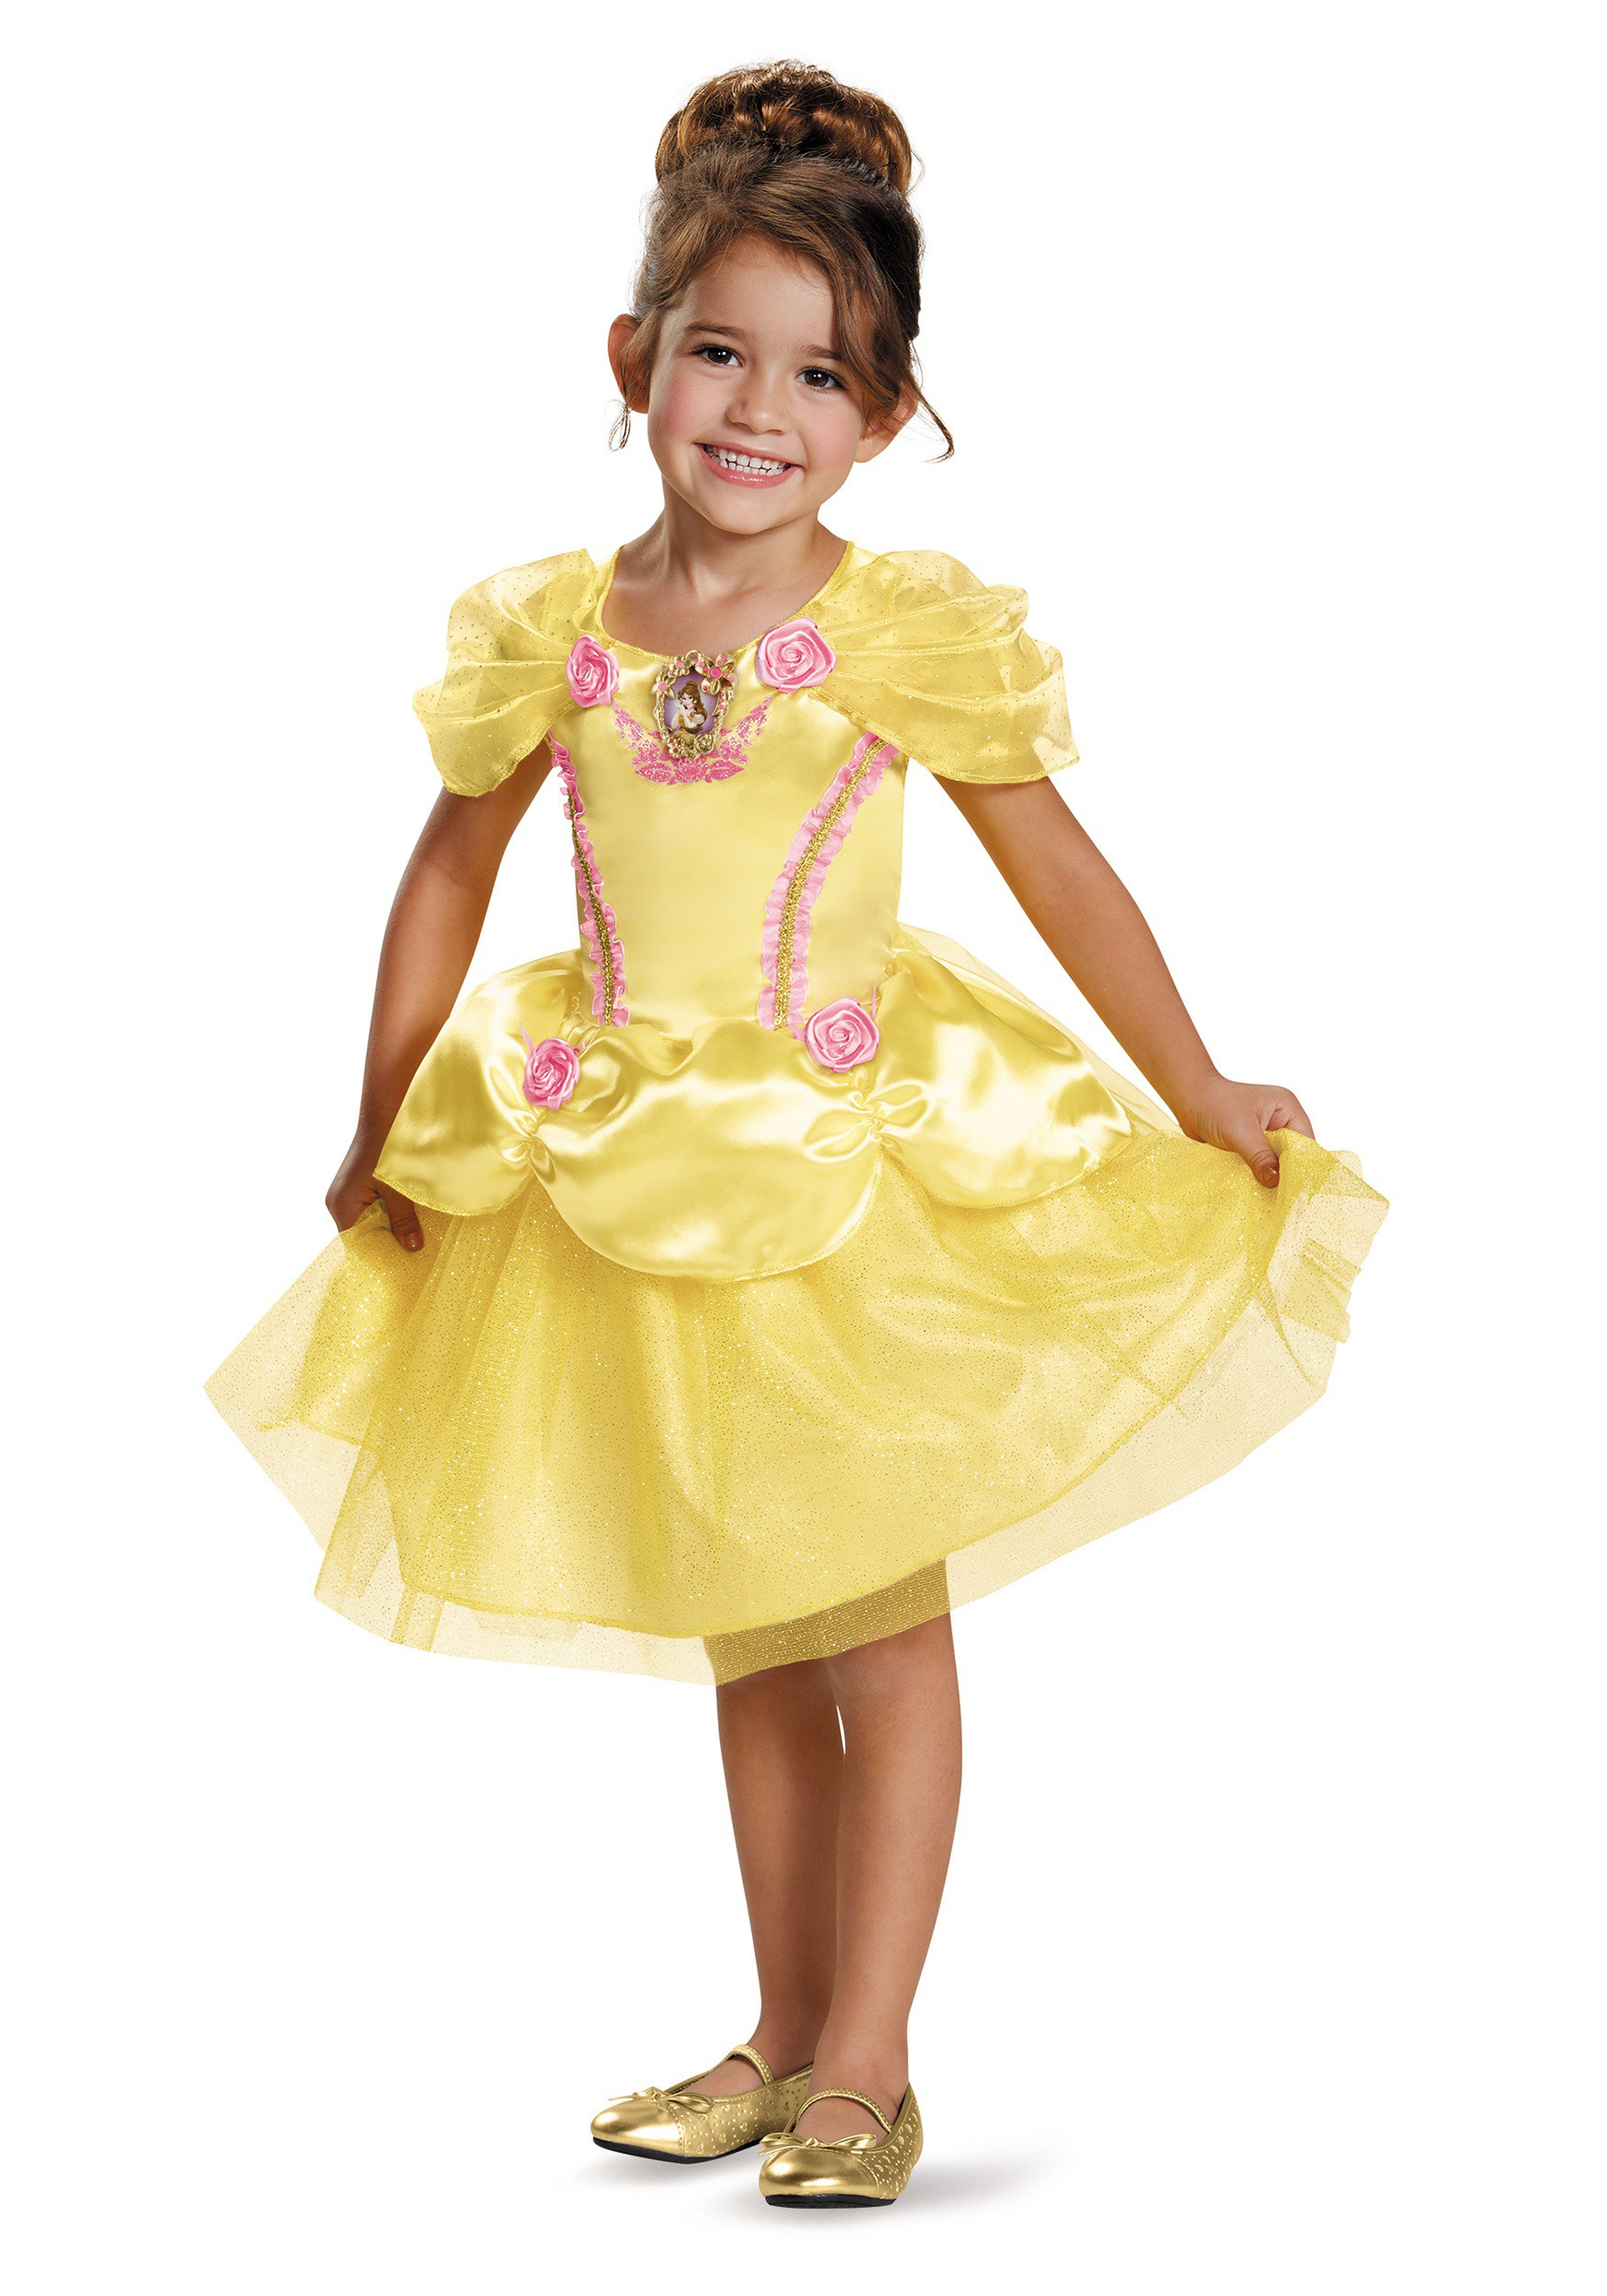 BELLE CLASSIC TODDLER COSTUME Beauty and the Beast Yellow Dress Kids